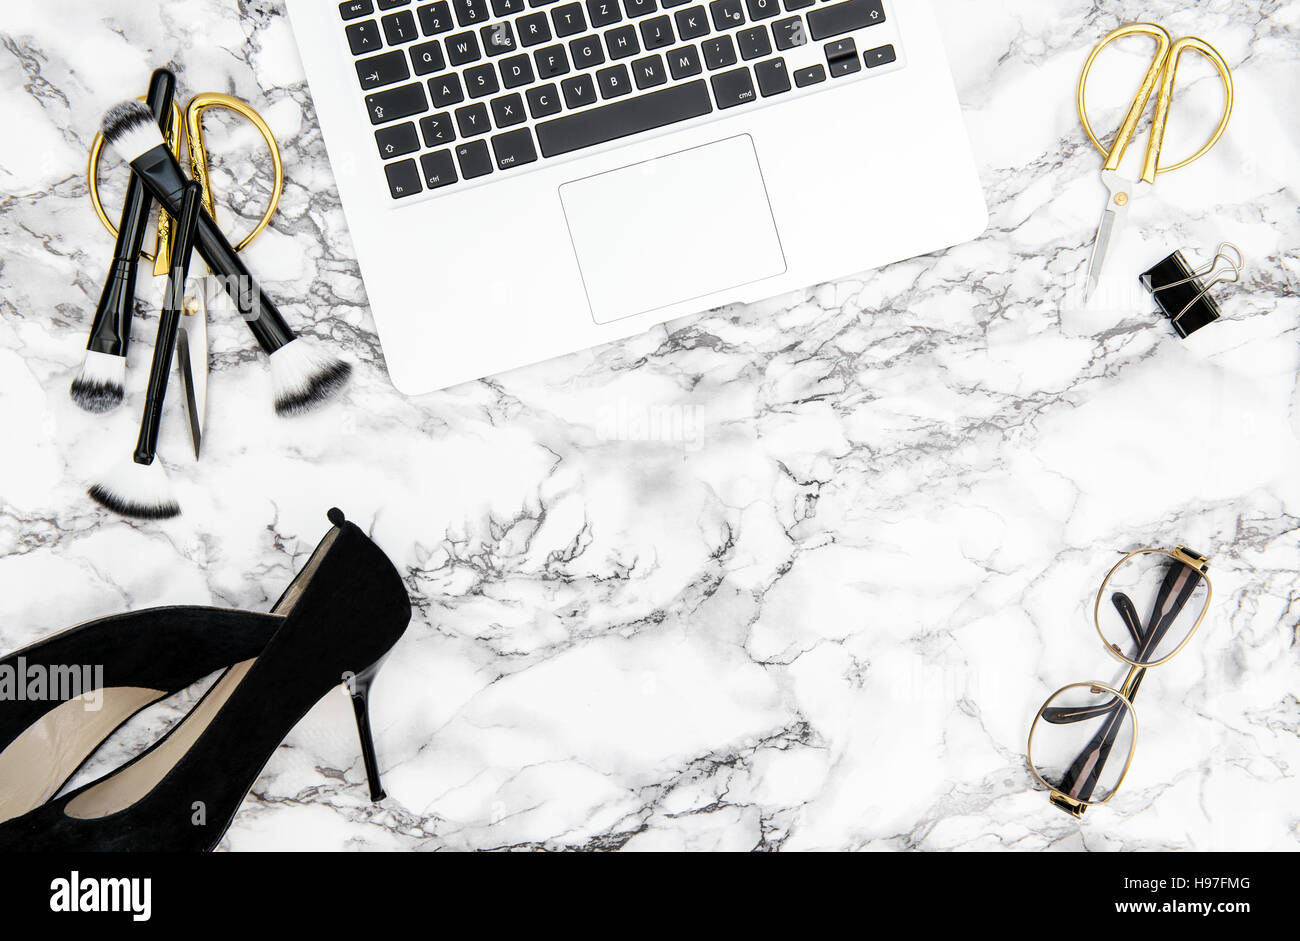 notebook supplies feminine accessories on marble office desk background fashion flat lay for blogger social media